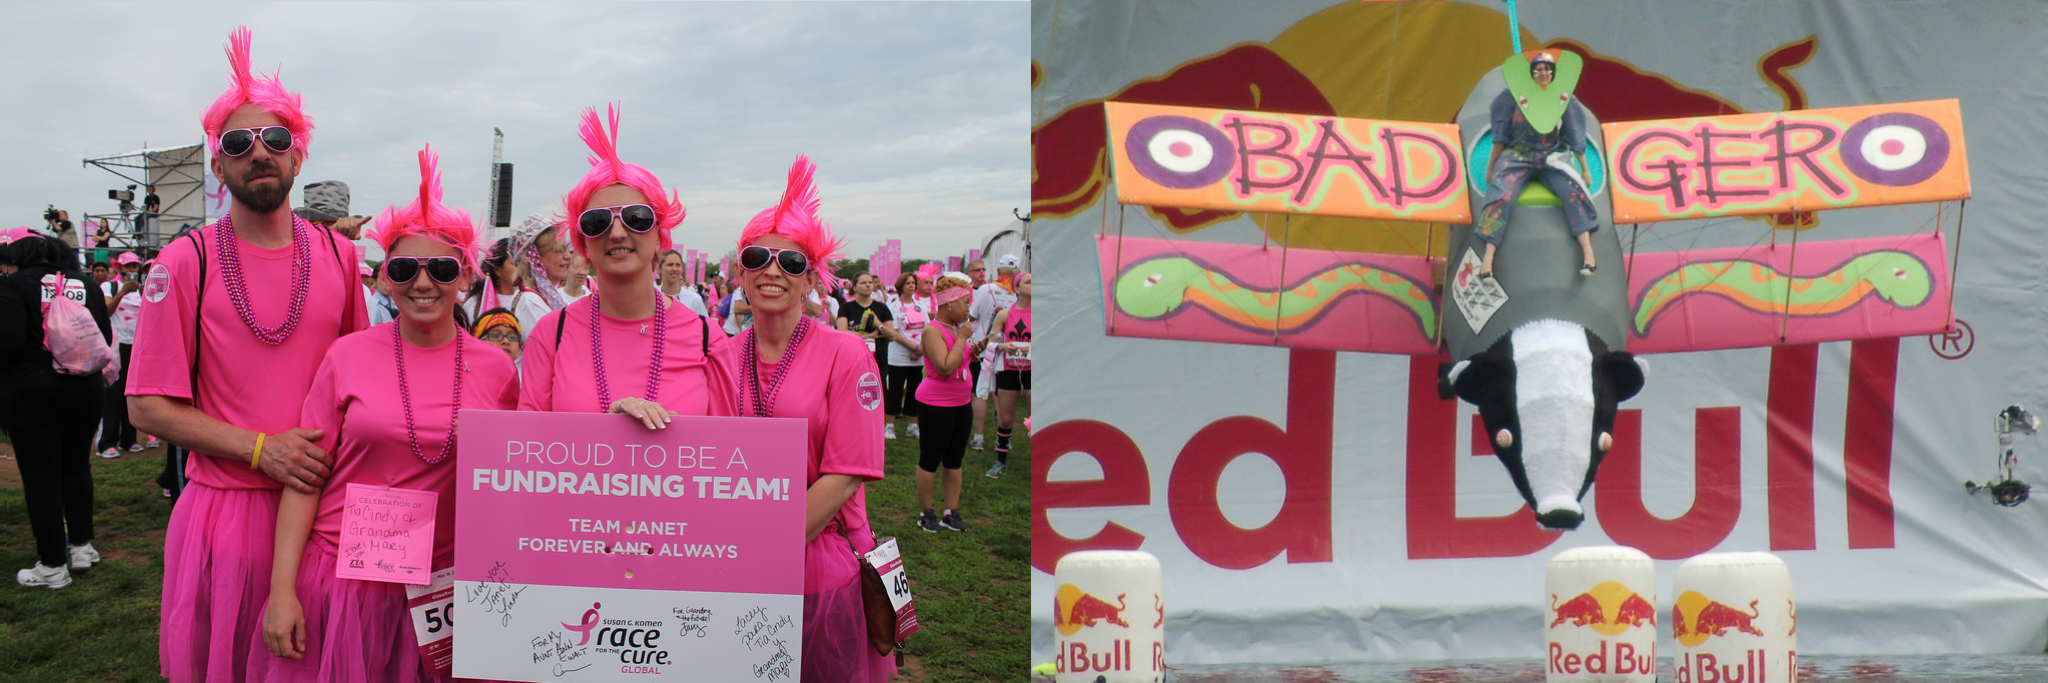 Left: Photo taken at a Race for the Cure event: Four pink-haired people clothed all in pink hold a sign that says, Proud to be a fundraising team! Team Janet forever and always. Right: Photo taken at a Red Bull Flugtag event: A person rides a small biplane that looks like a badger. The plane's wings are brightly coloured, feature cartoon snakes, and read Badger. The plane is in front of a giant Red Bull sign and above several inflated cans of Red Bull.